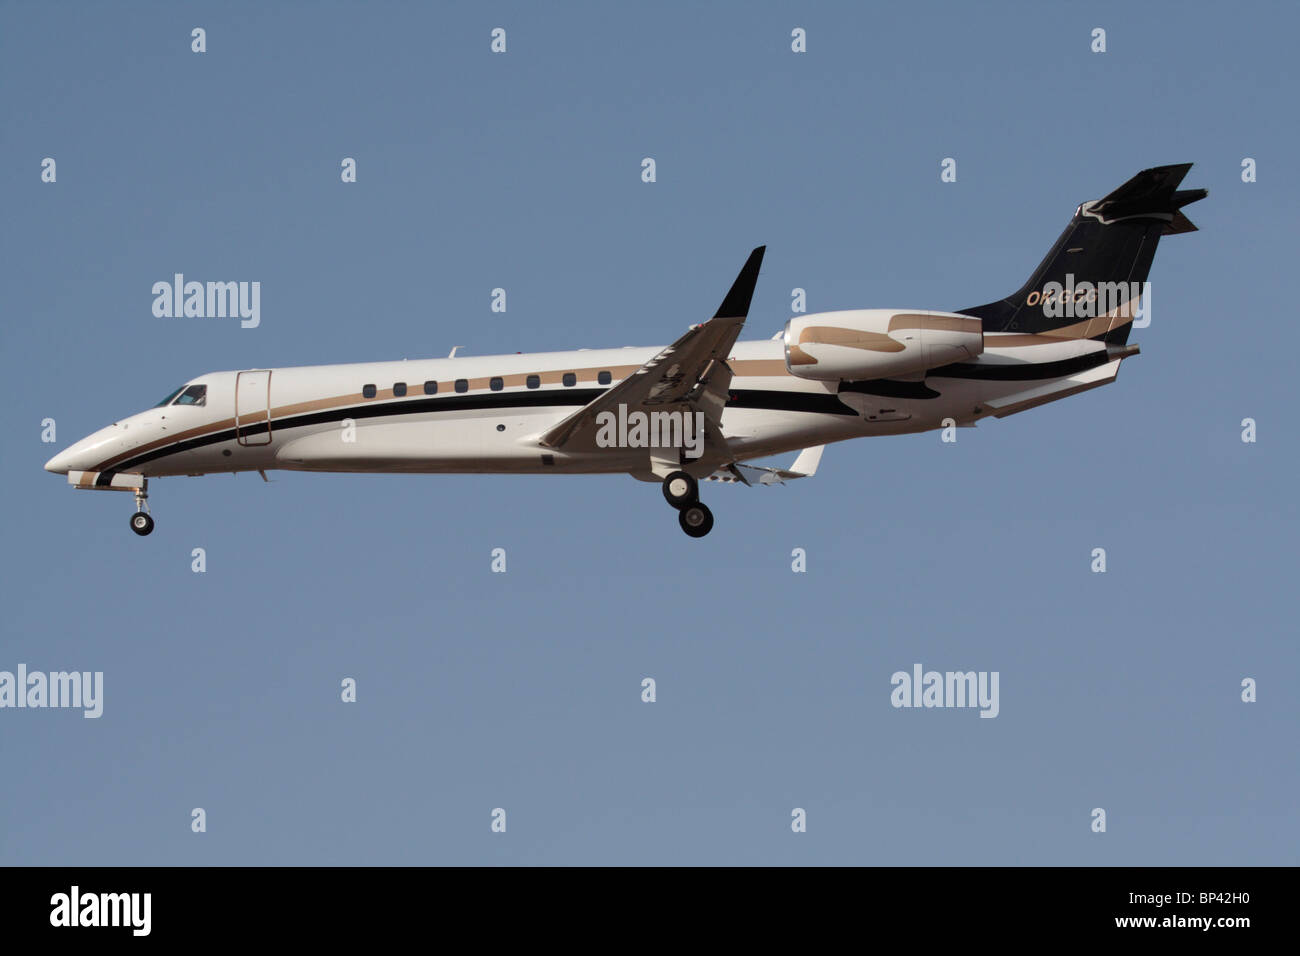 Embraer Legacy 600 private jet on approach. Side view. - Stock Image